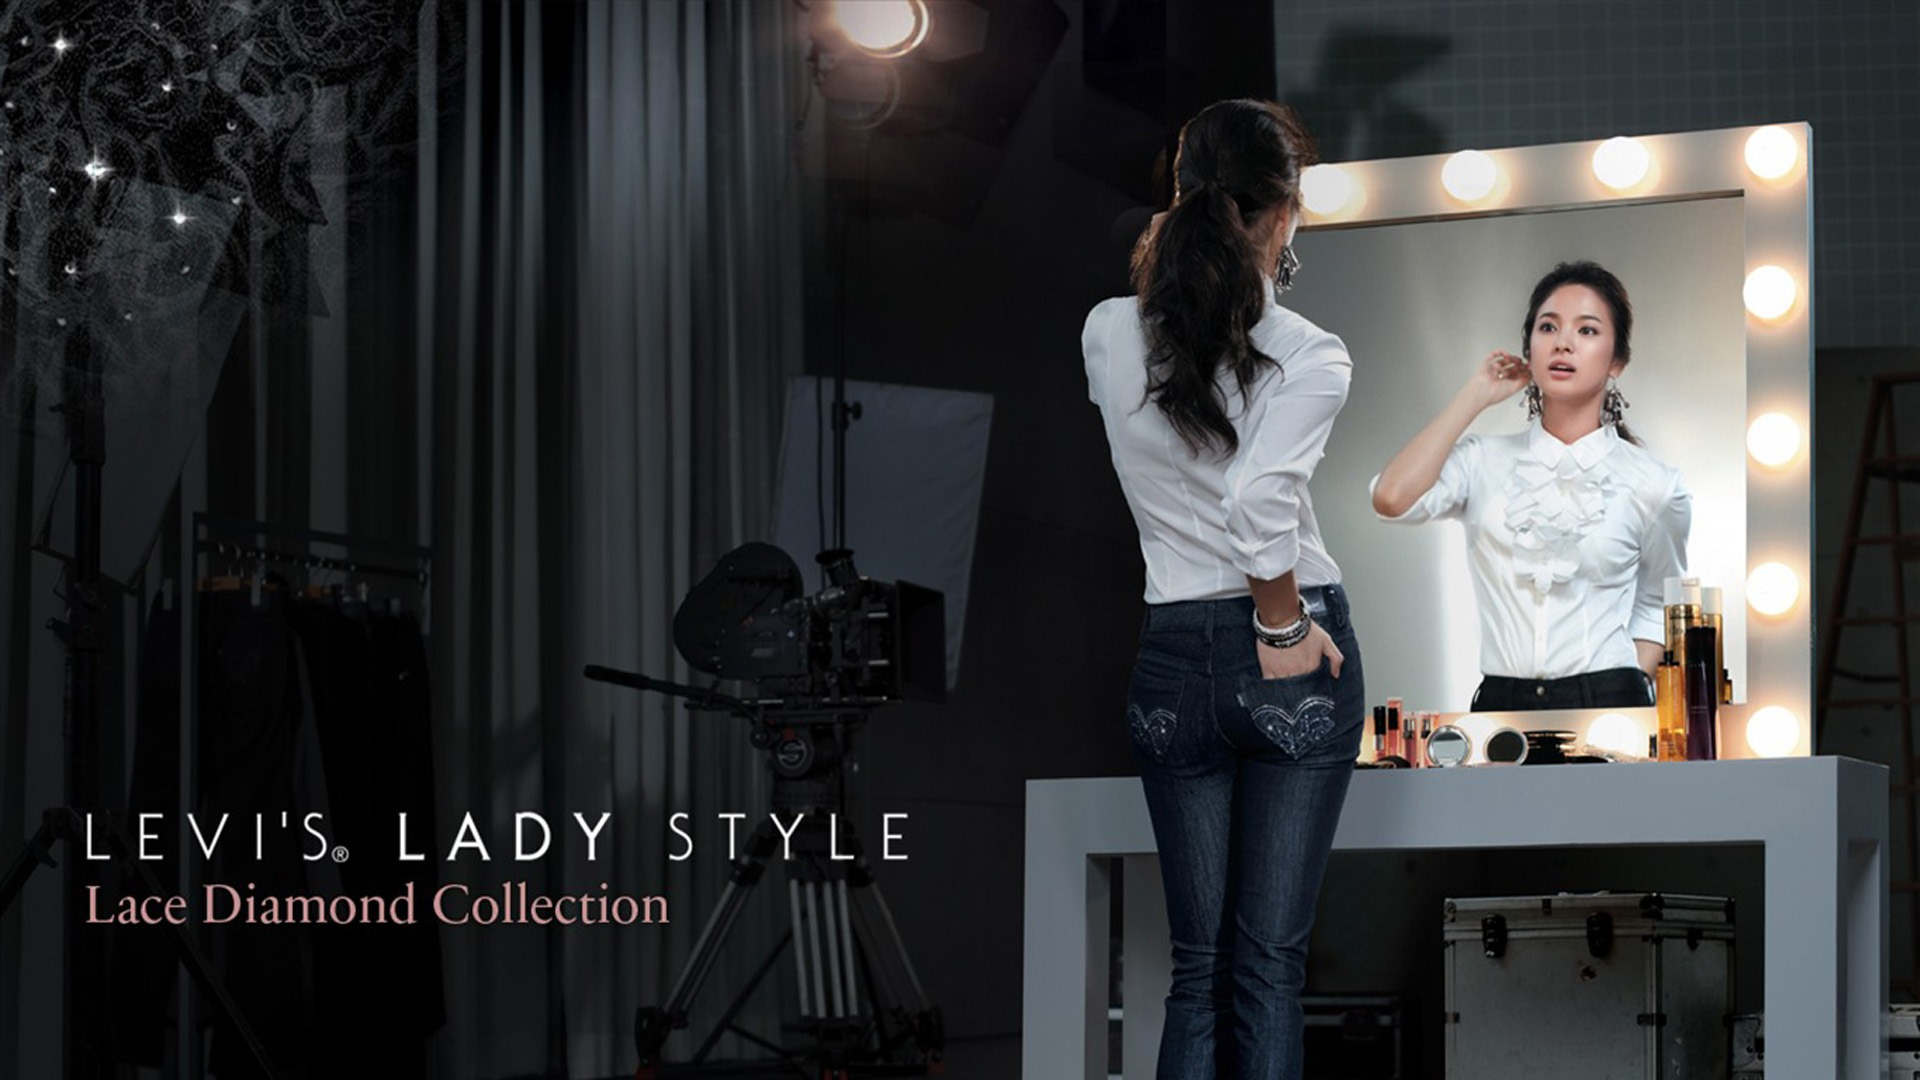 levis lady style clothing - photo #10